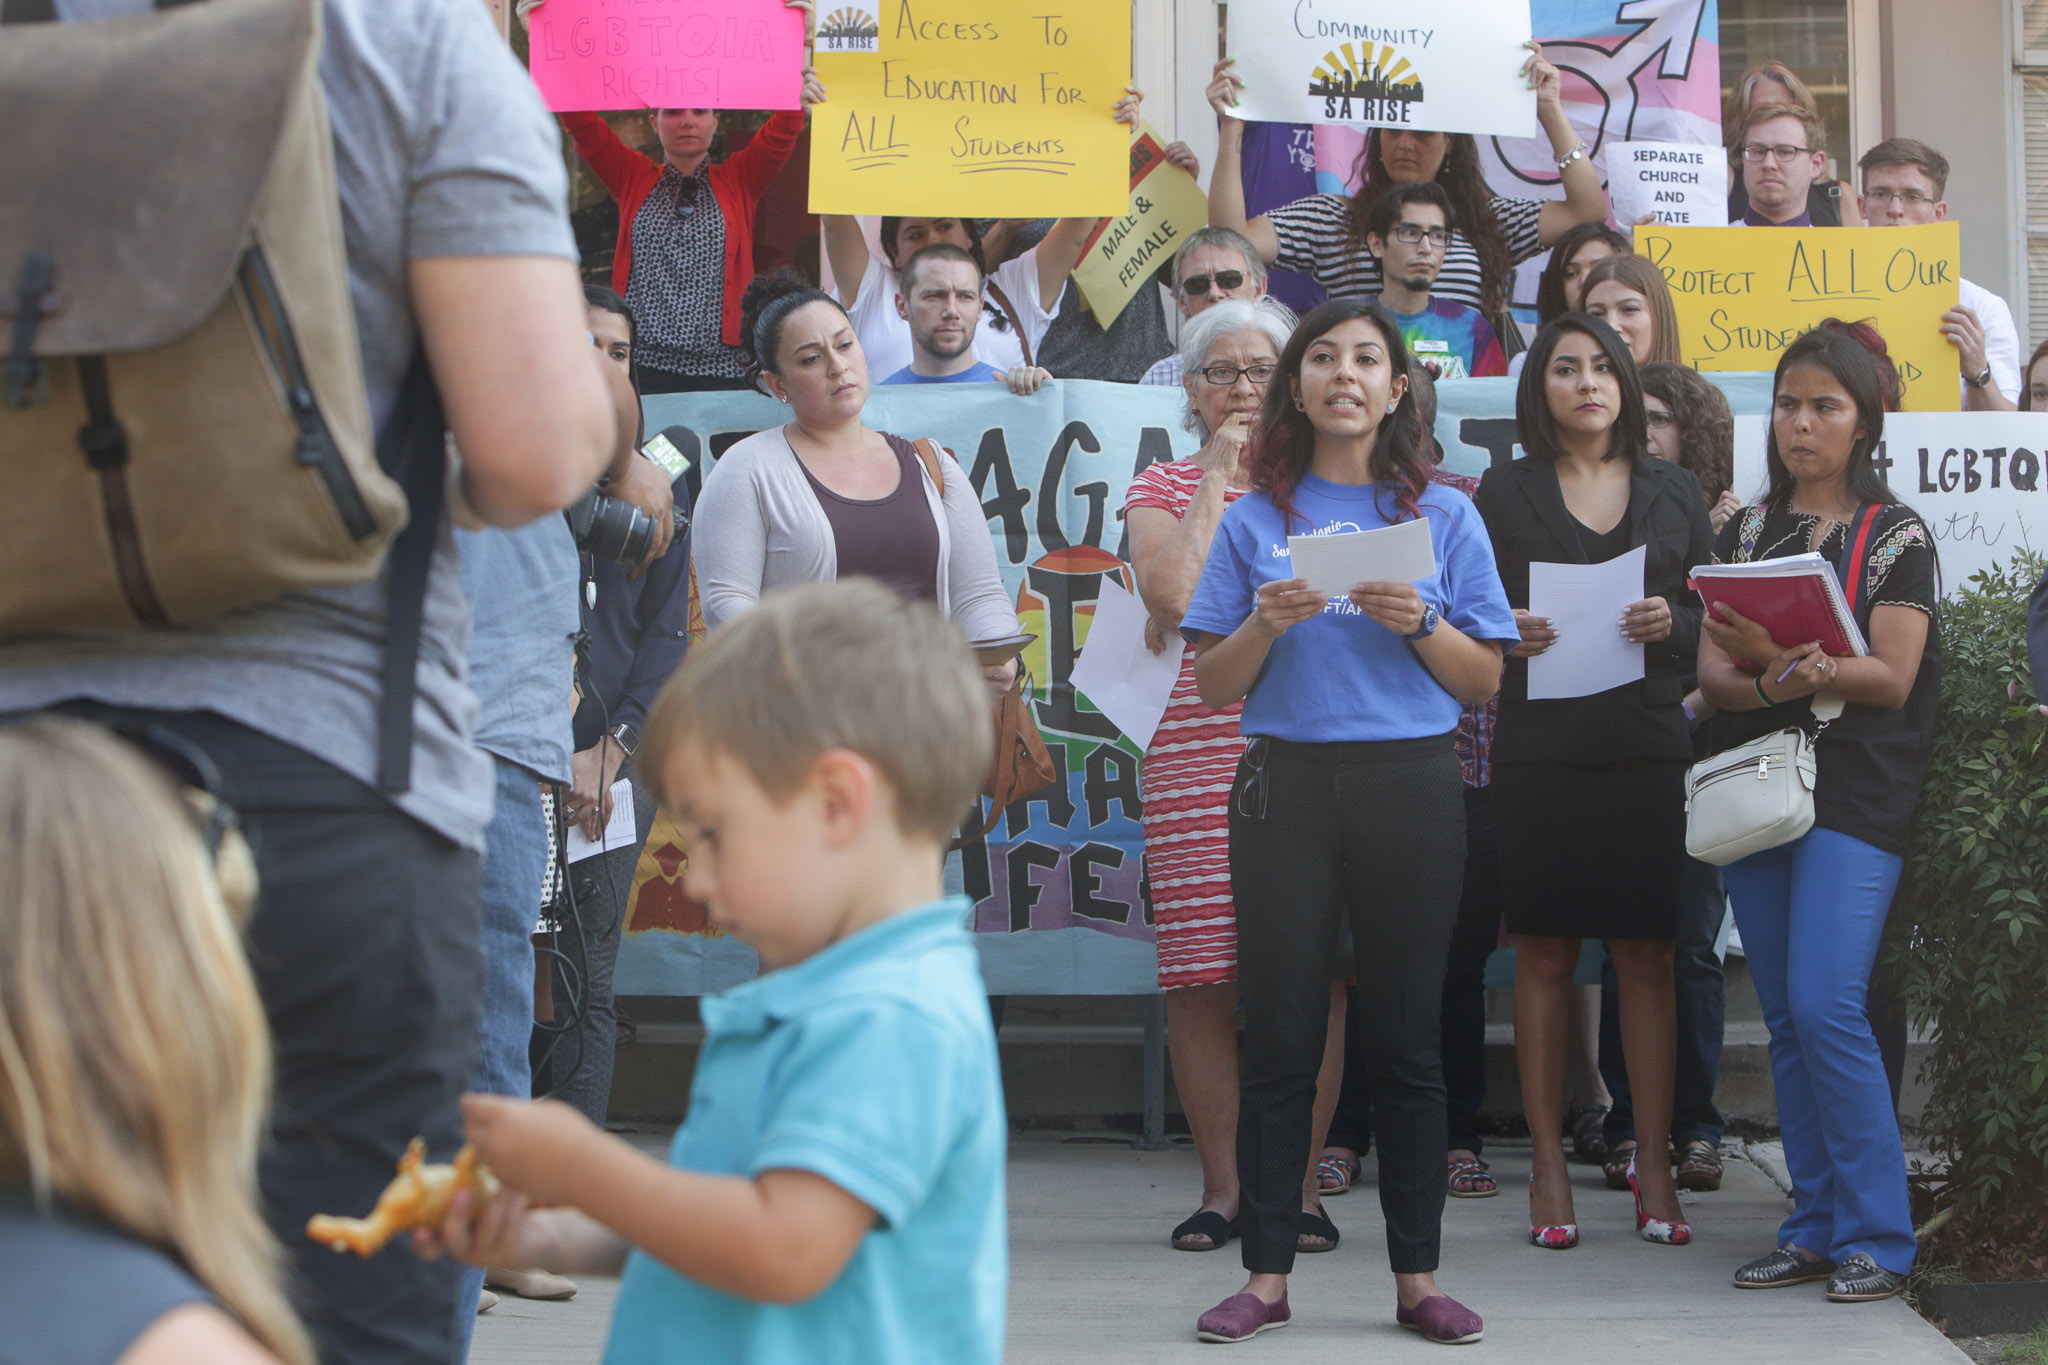 SAISD teacher Alejandra Lopez gives a statement during a press conference prior to the meeting.